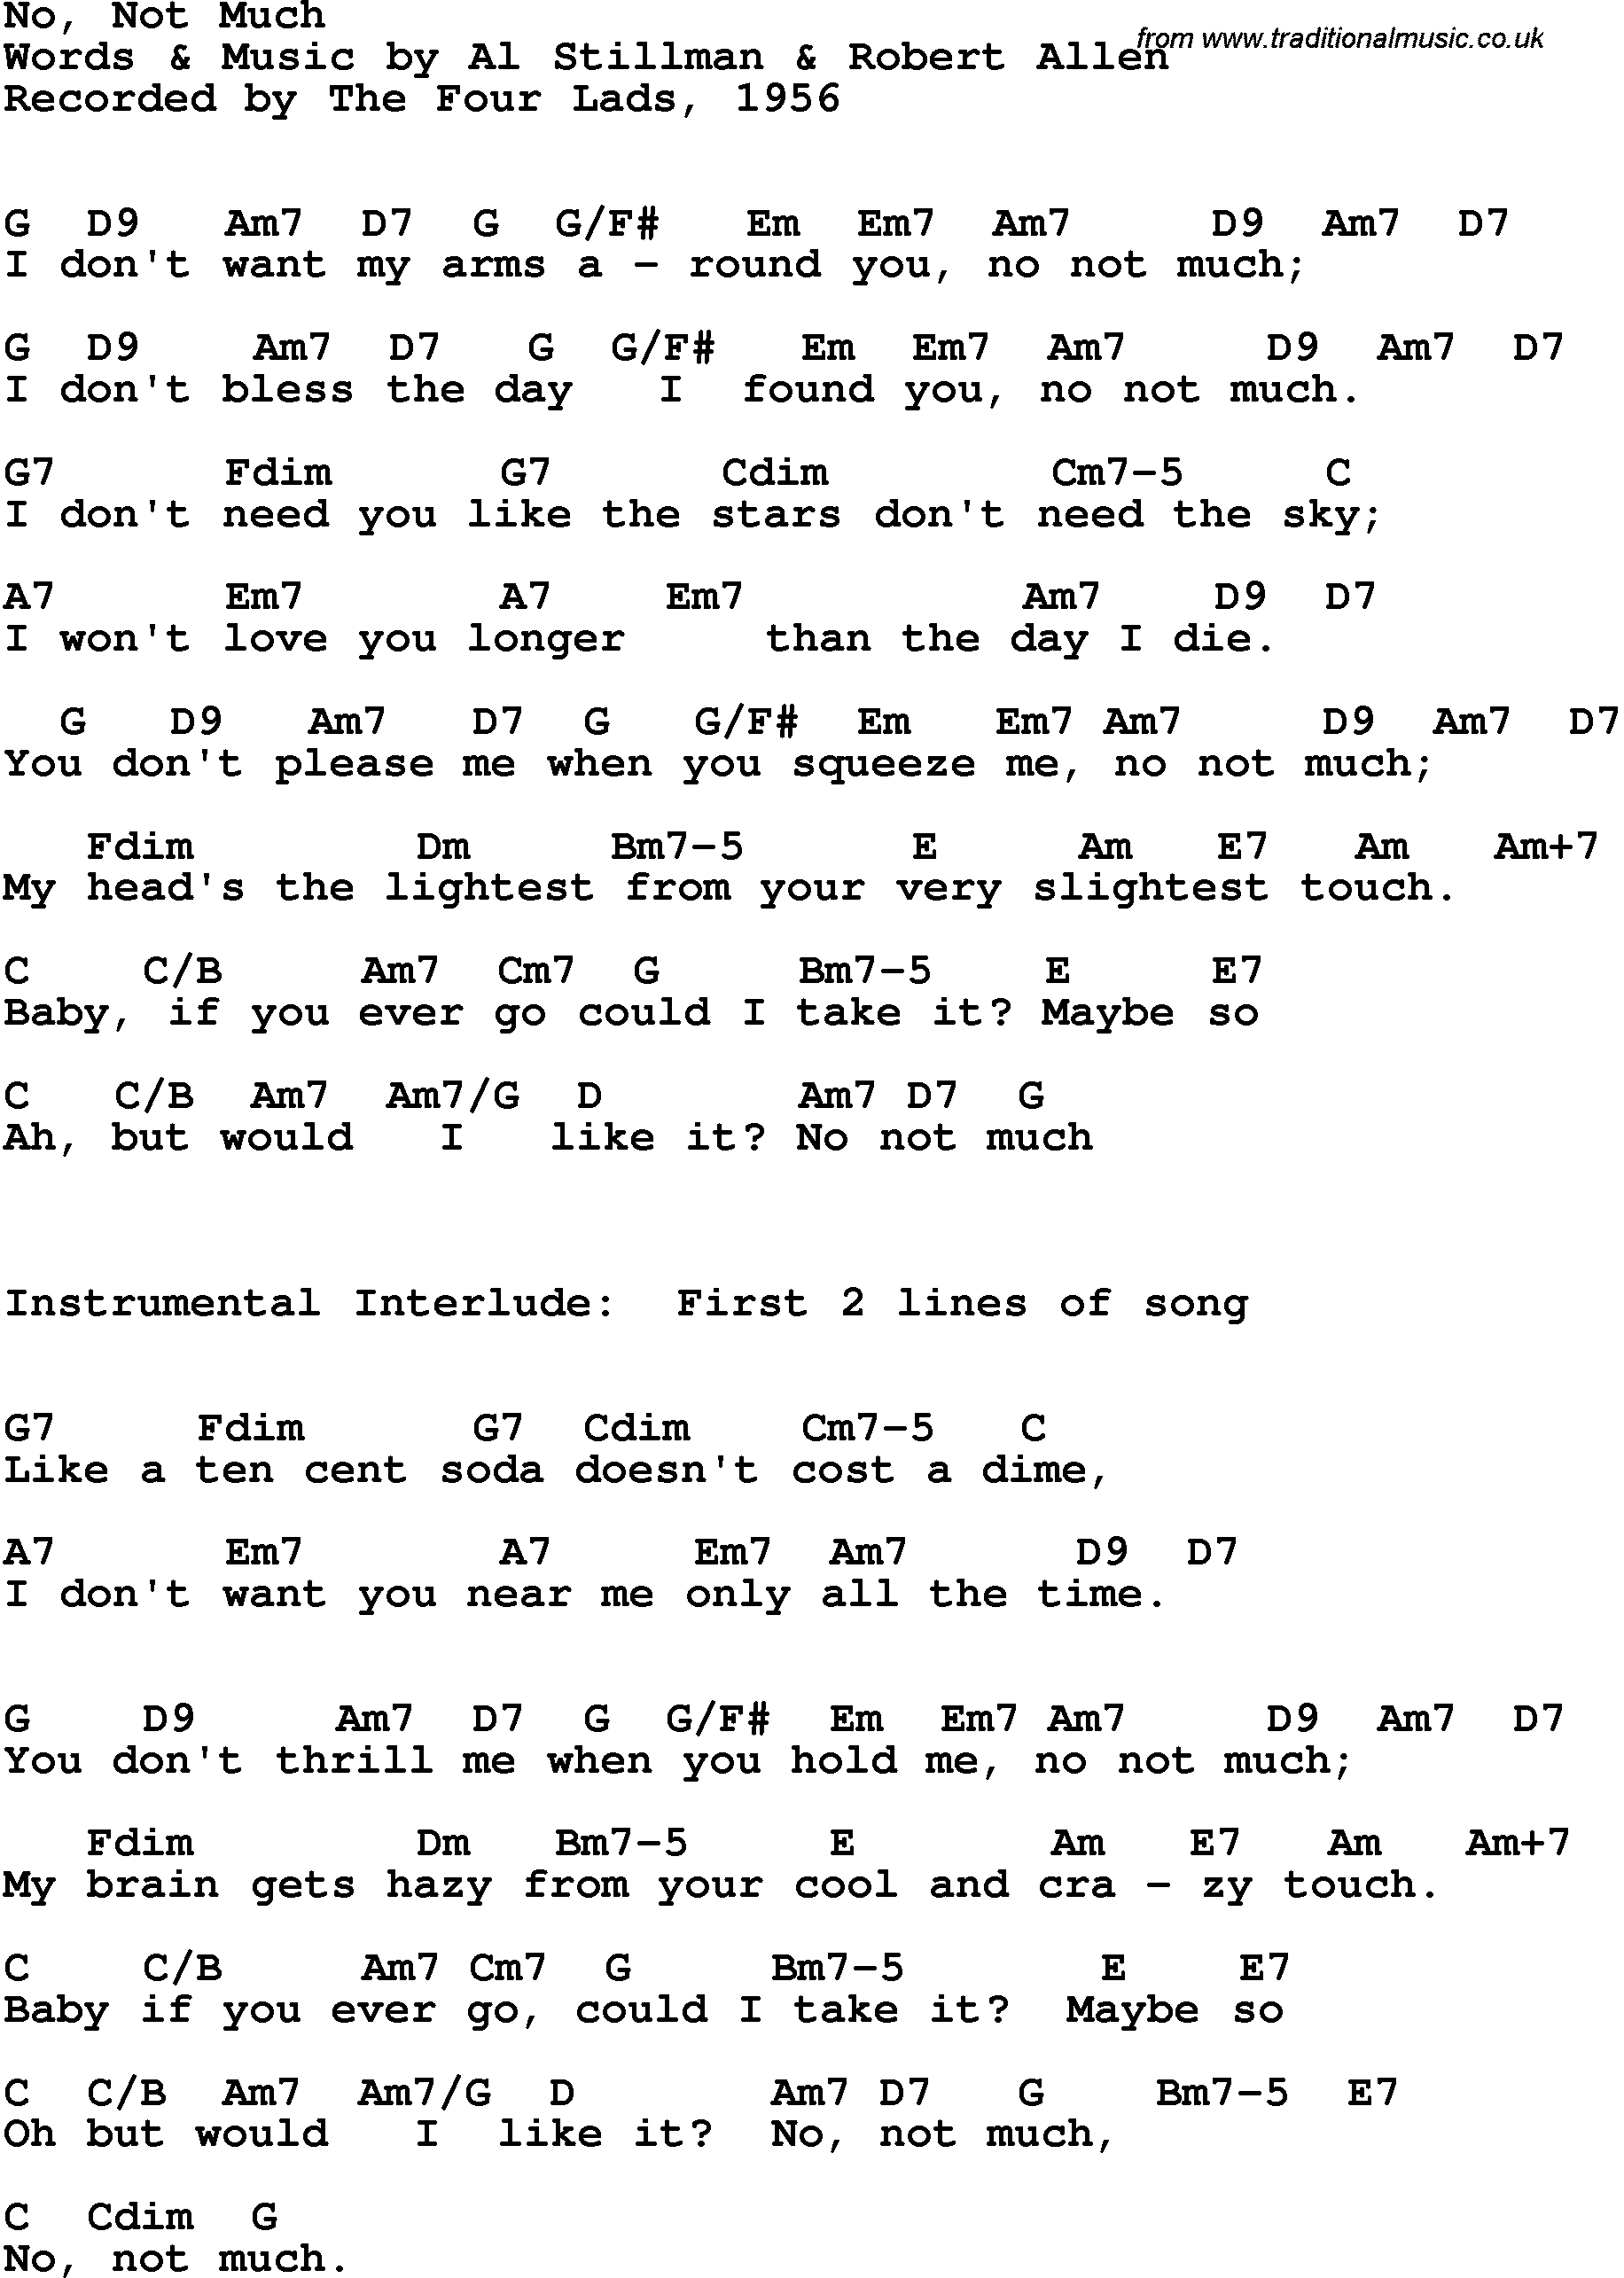 song lyrics with guitar chords for no not much the four lads 1956. Black Bedroom Furniture Sets. Home Design Ideas